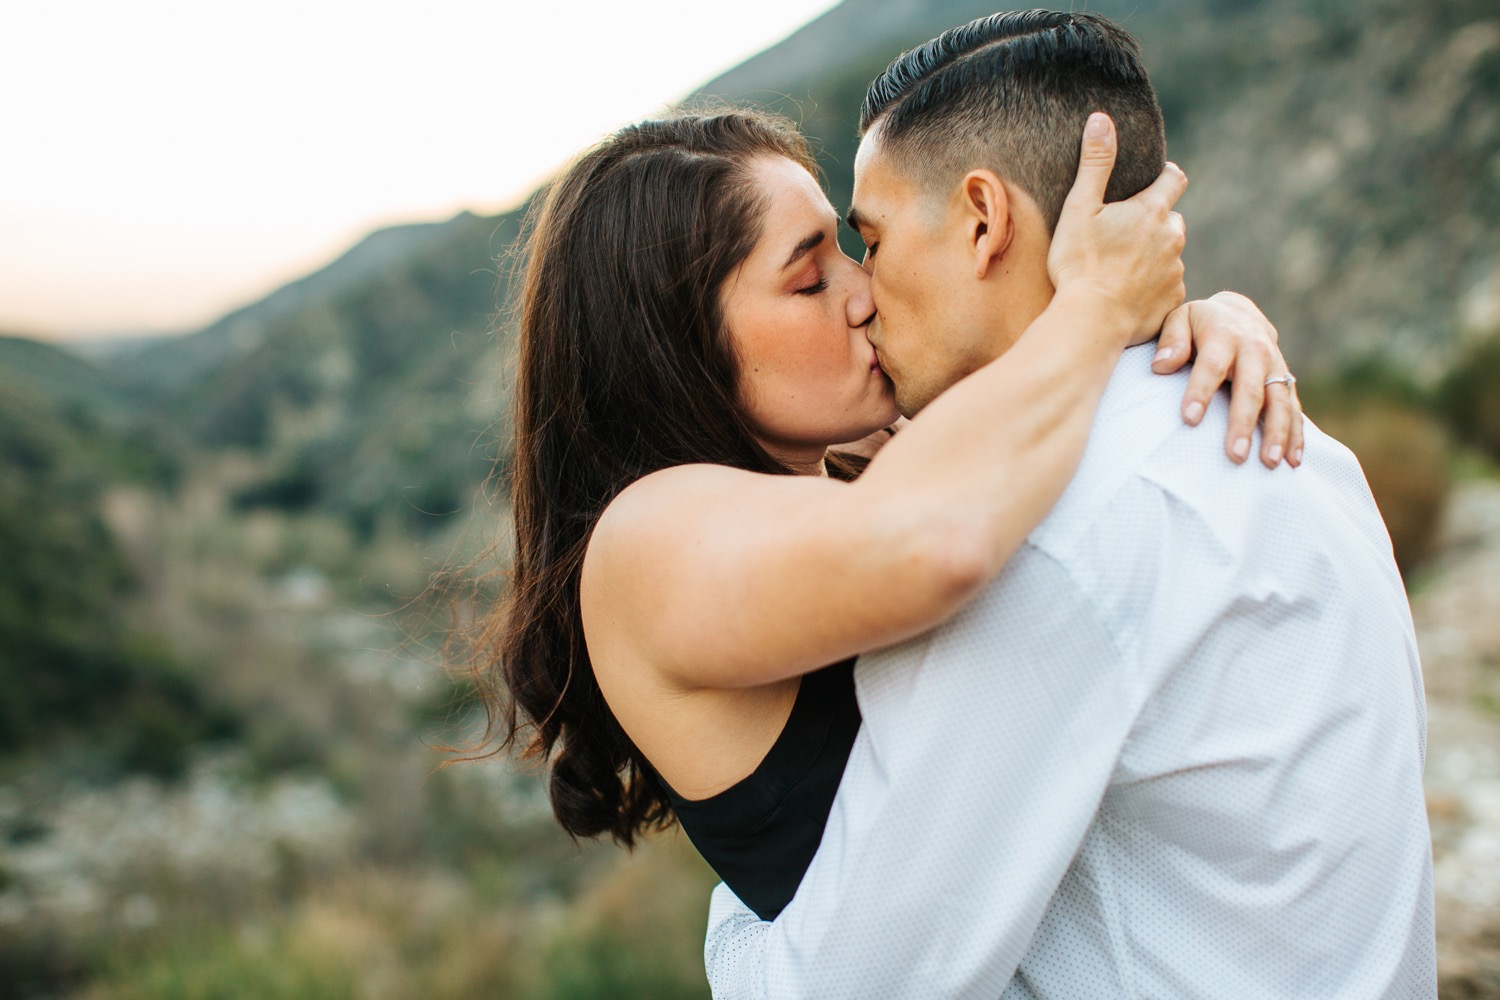 So Cal Wedding and Engagement Photographer - https://brittneyhannonphotography.com